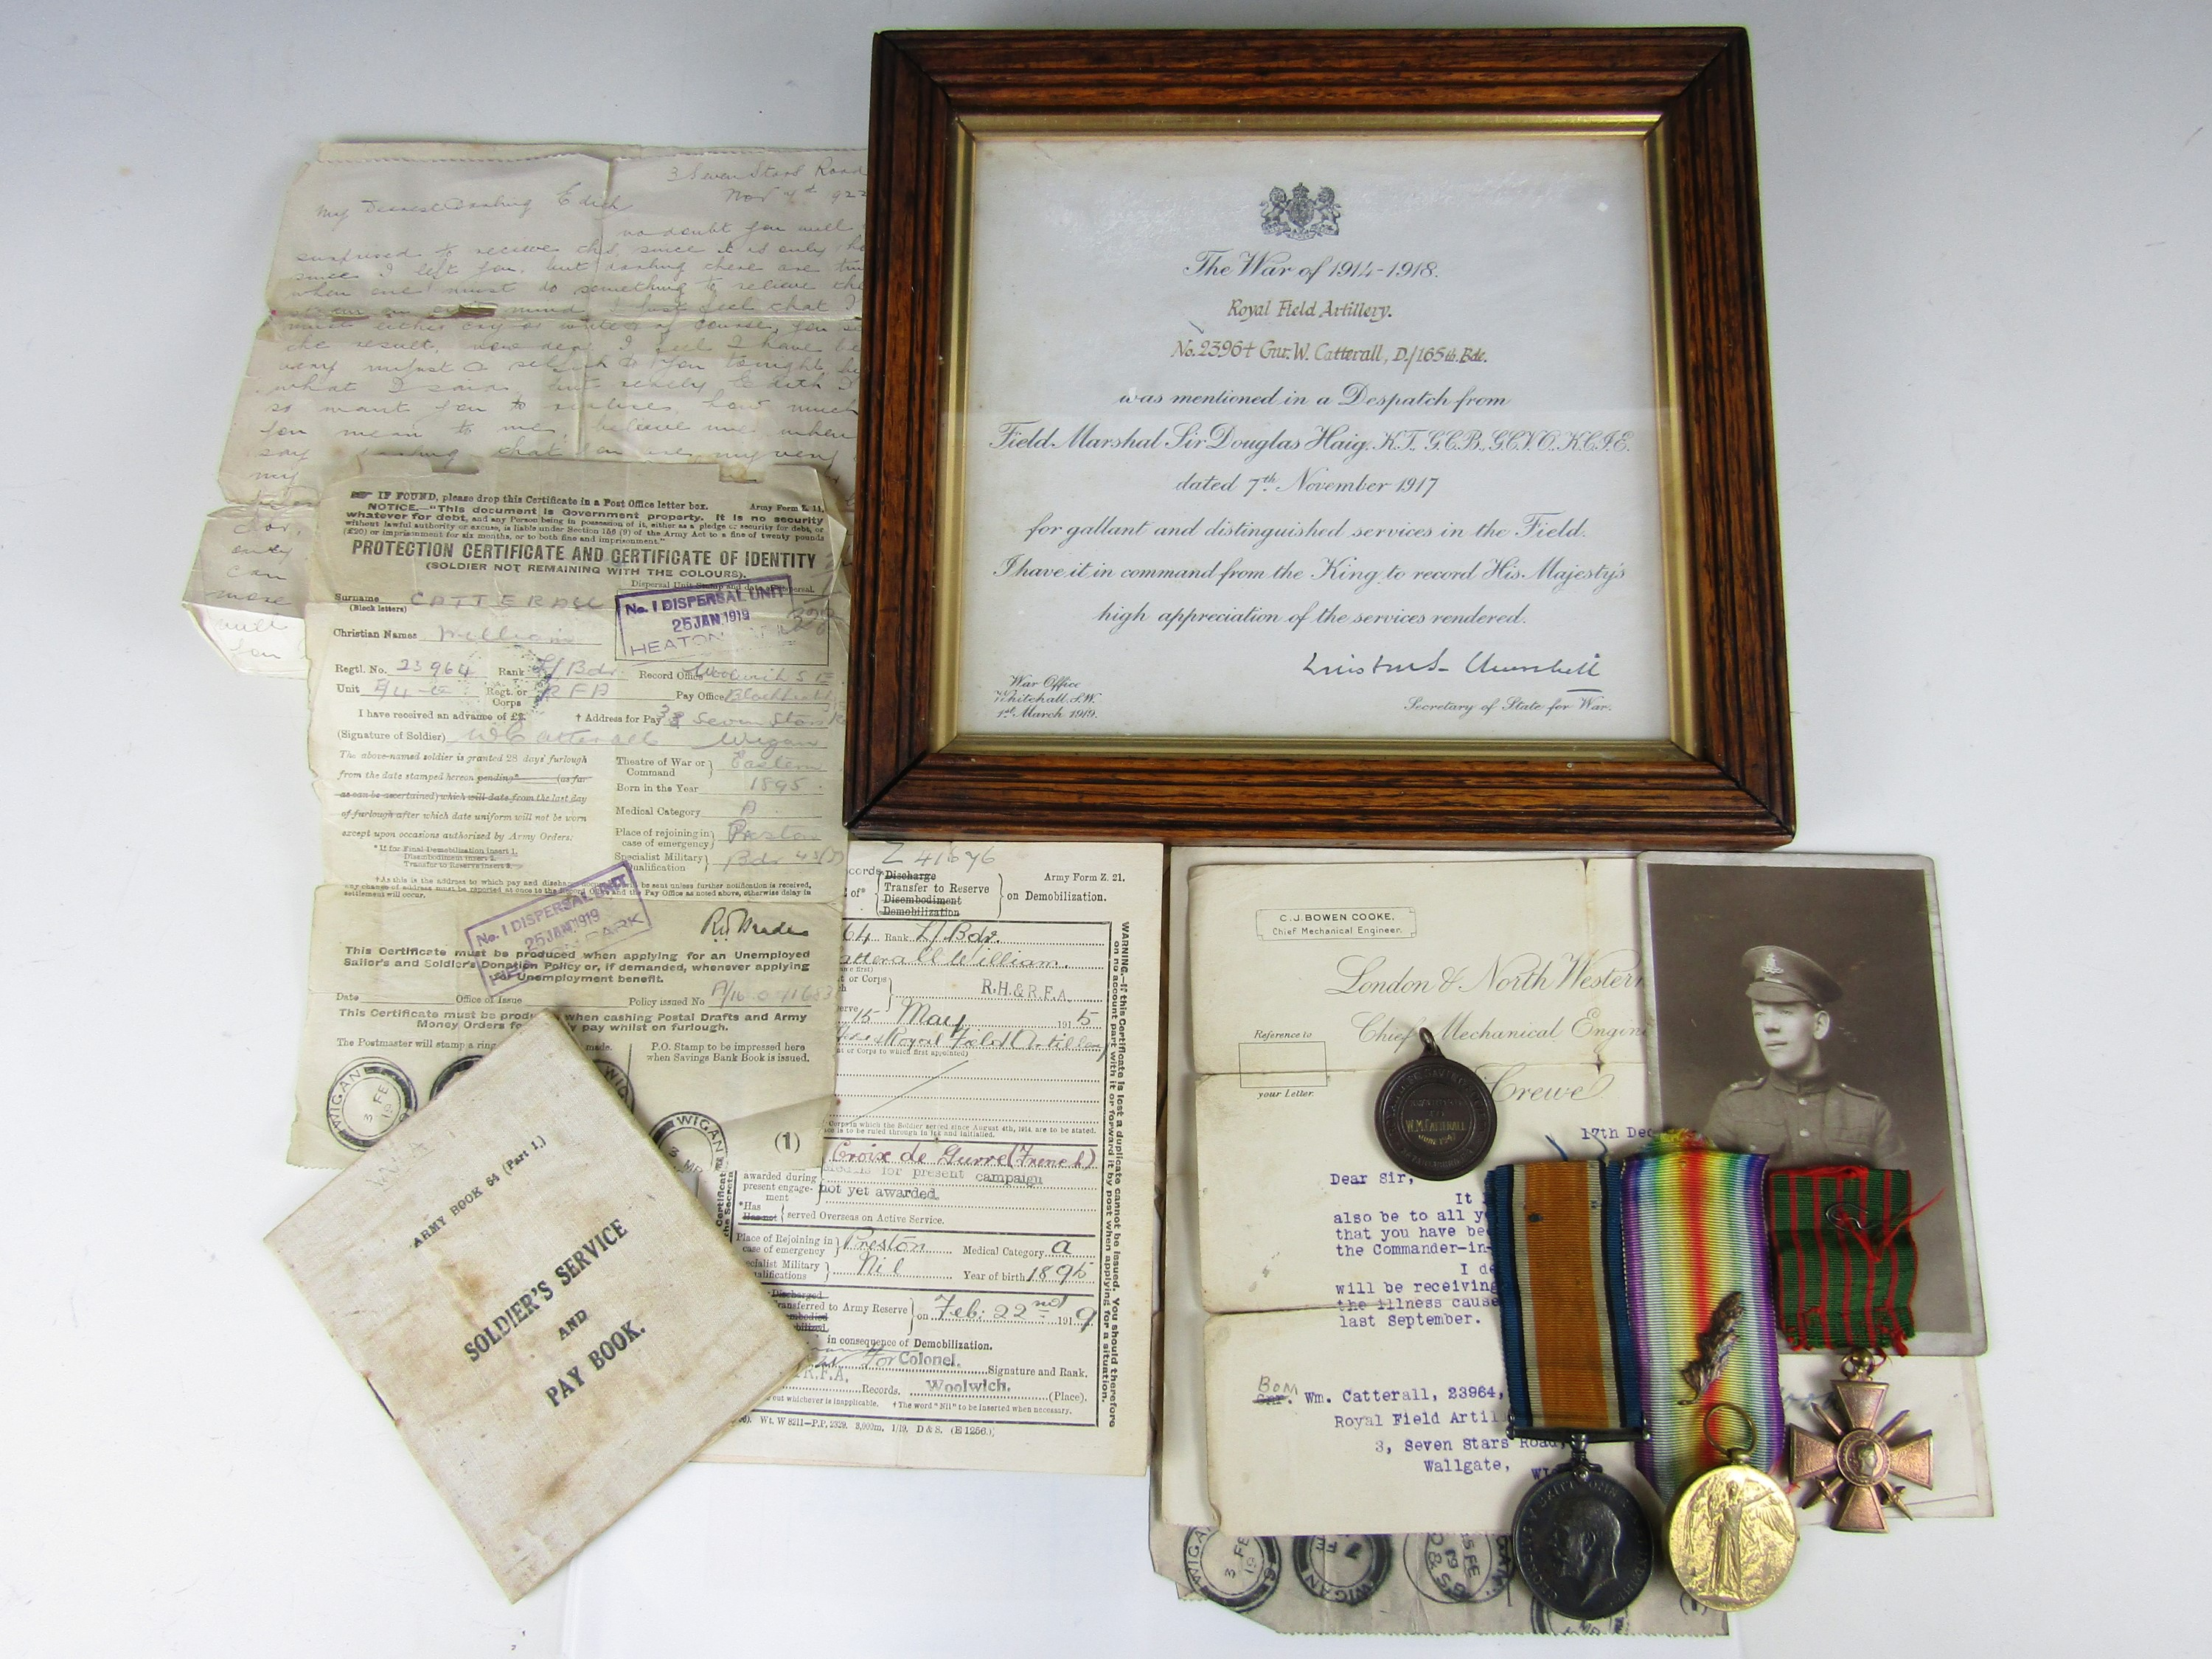 Lot 57 - A British War and Victory medal pair to L-23964 Gunner W Catterall, the latter medal's ribbon